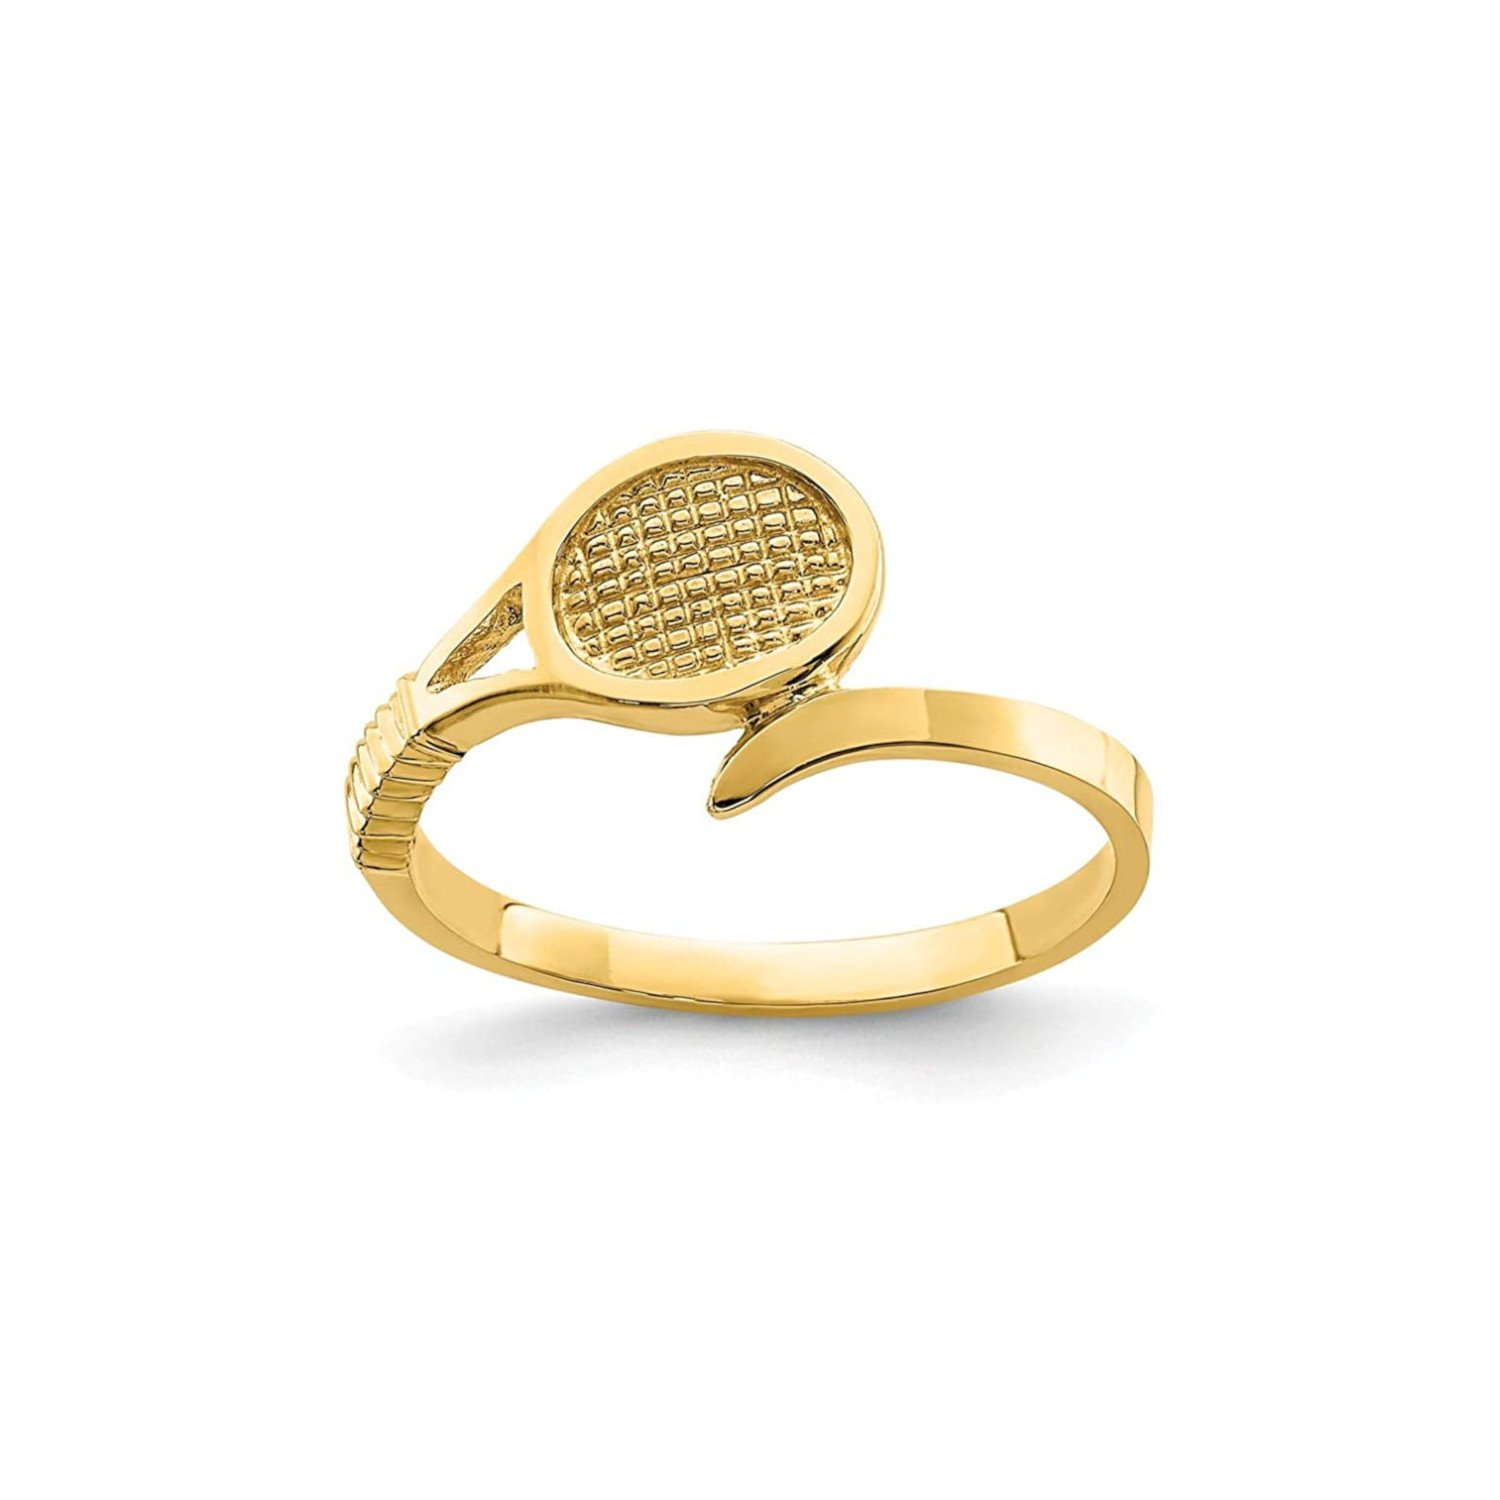 Yellow Gold Tennis Ring – 14K (TENNIS GIFTS)